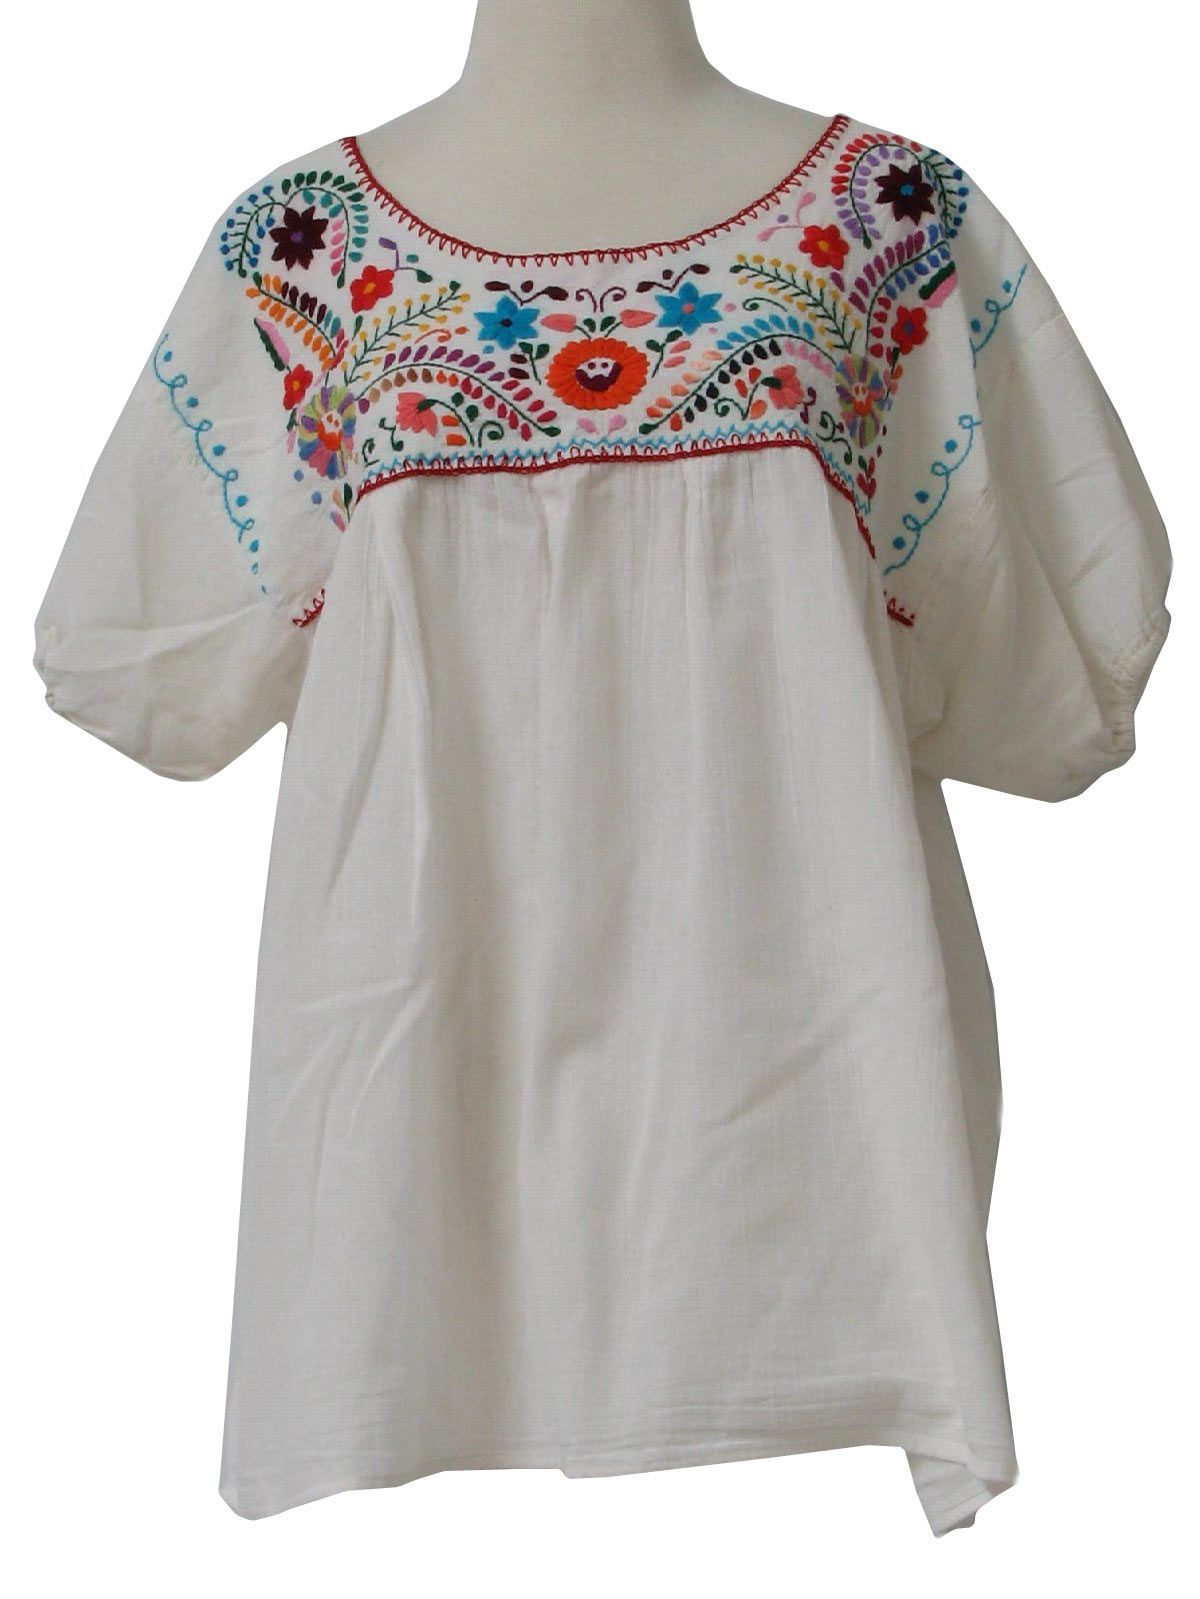 1970's Mexican Blouse Womens Embroidered Hippie Shirt ...